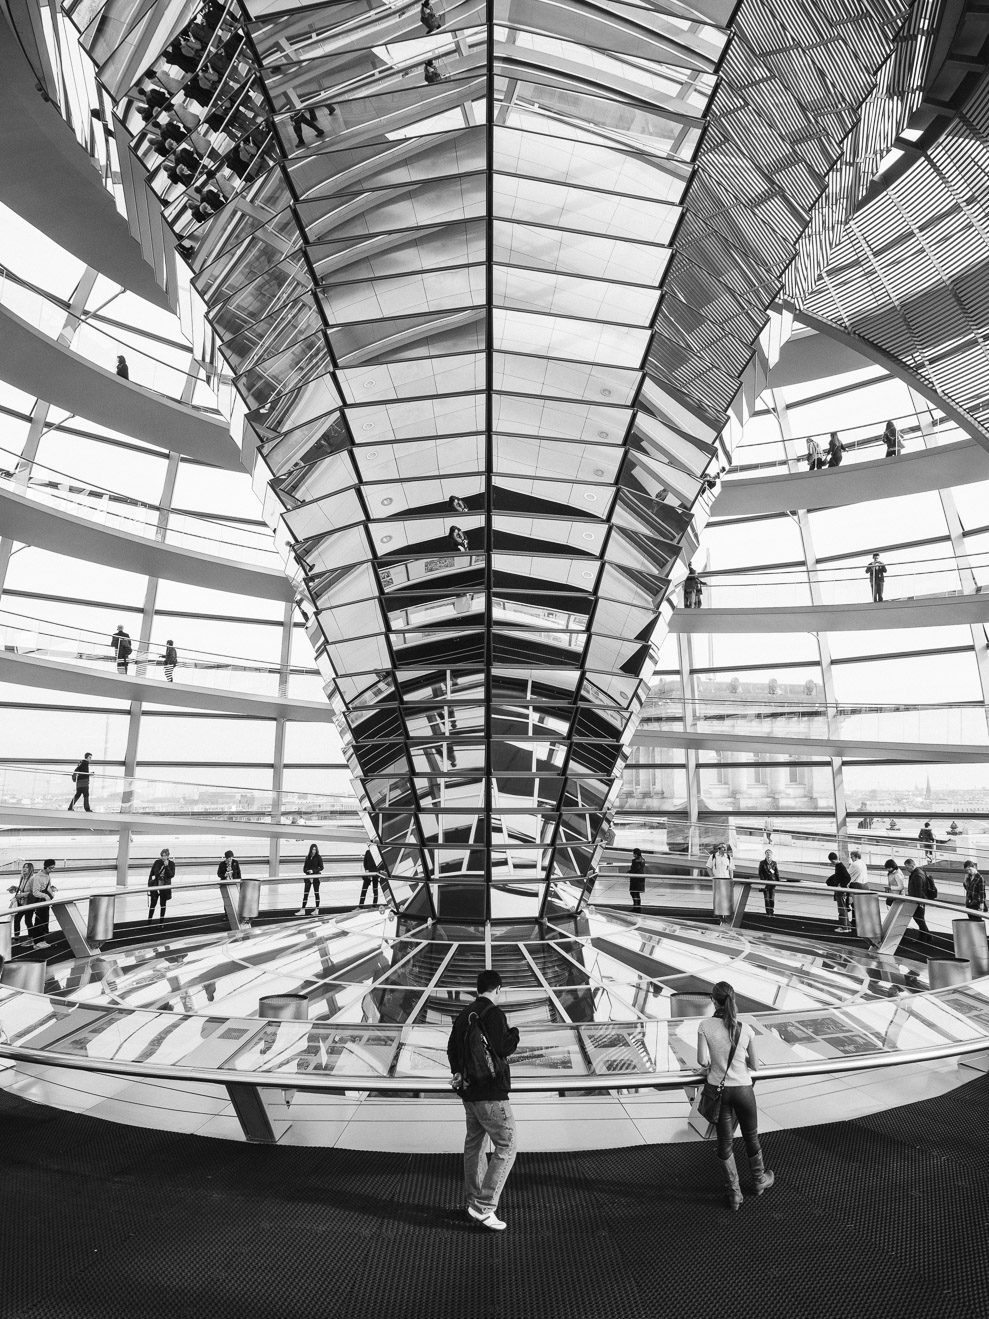 21. Reichstag Dome